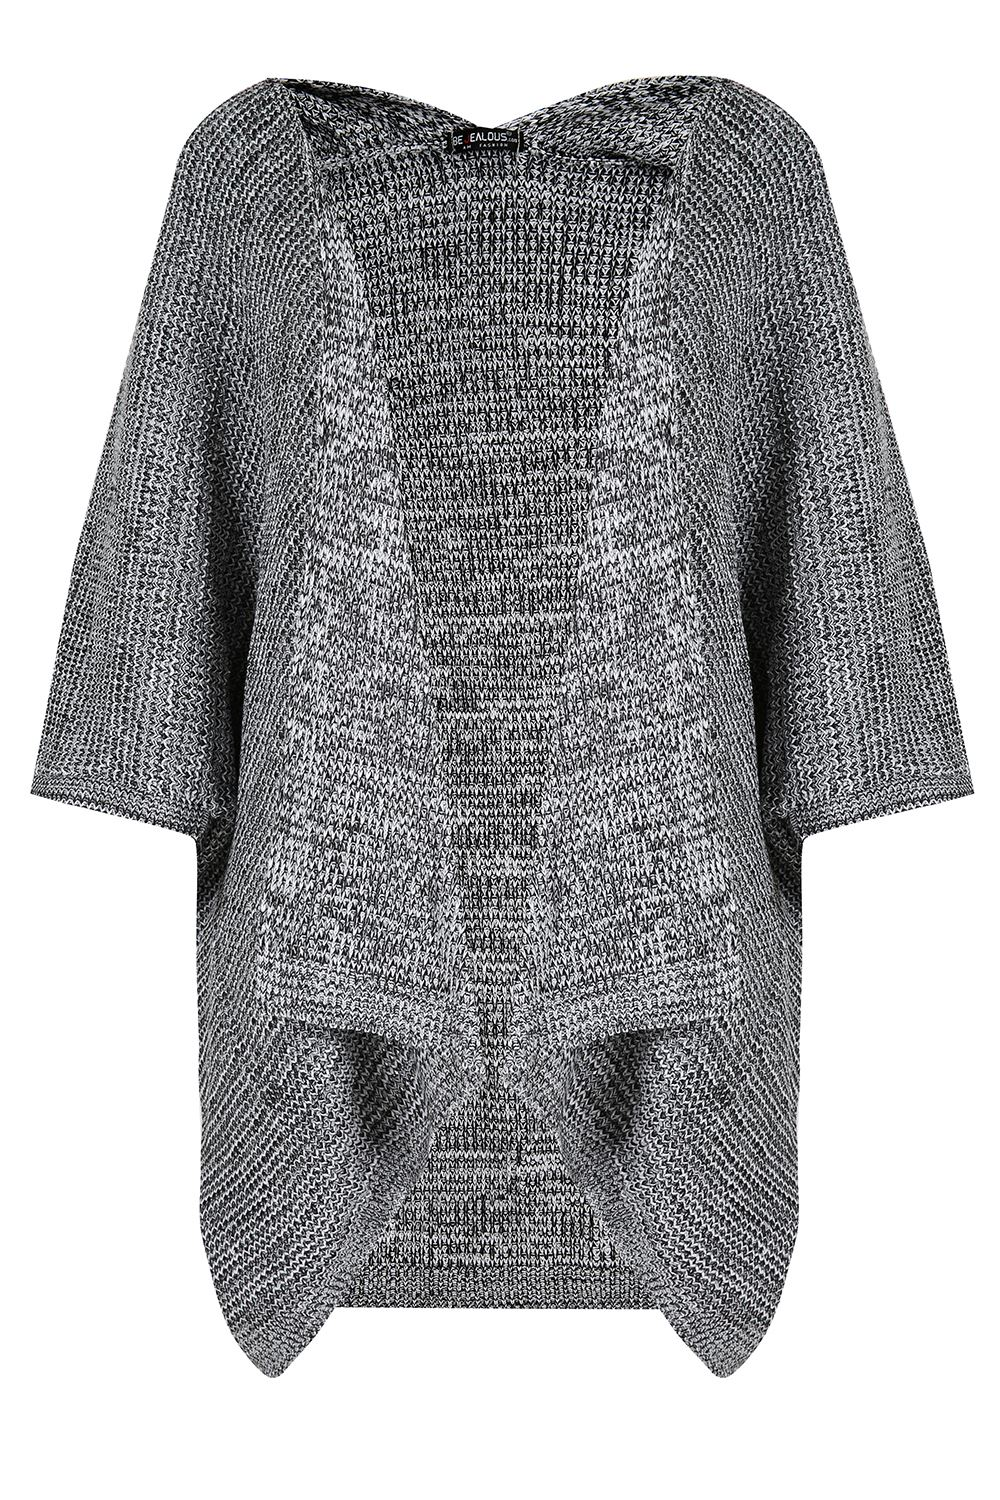 Sweaters + Cardigans for Women. Cozy up in an oversized sweater from Urban Outfitters' selection of women's sweaters and cardigans. Find a new closet staple with our wide selection of chunky knits and button-down cardigan styles. Pair your new find with a basic bodysuit and your favorite jeans.